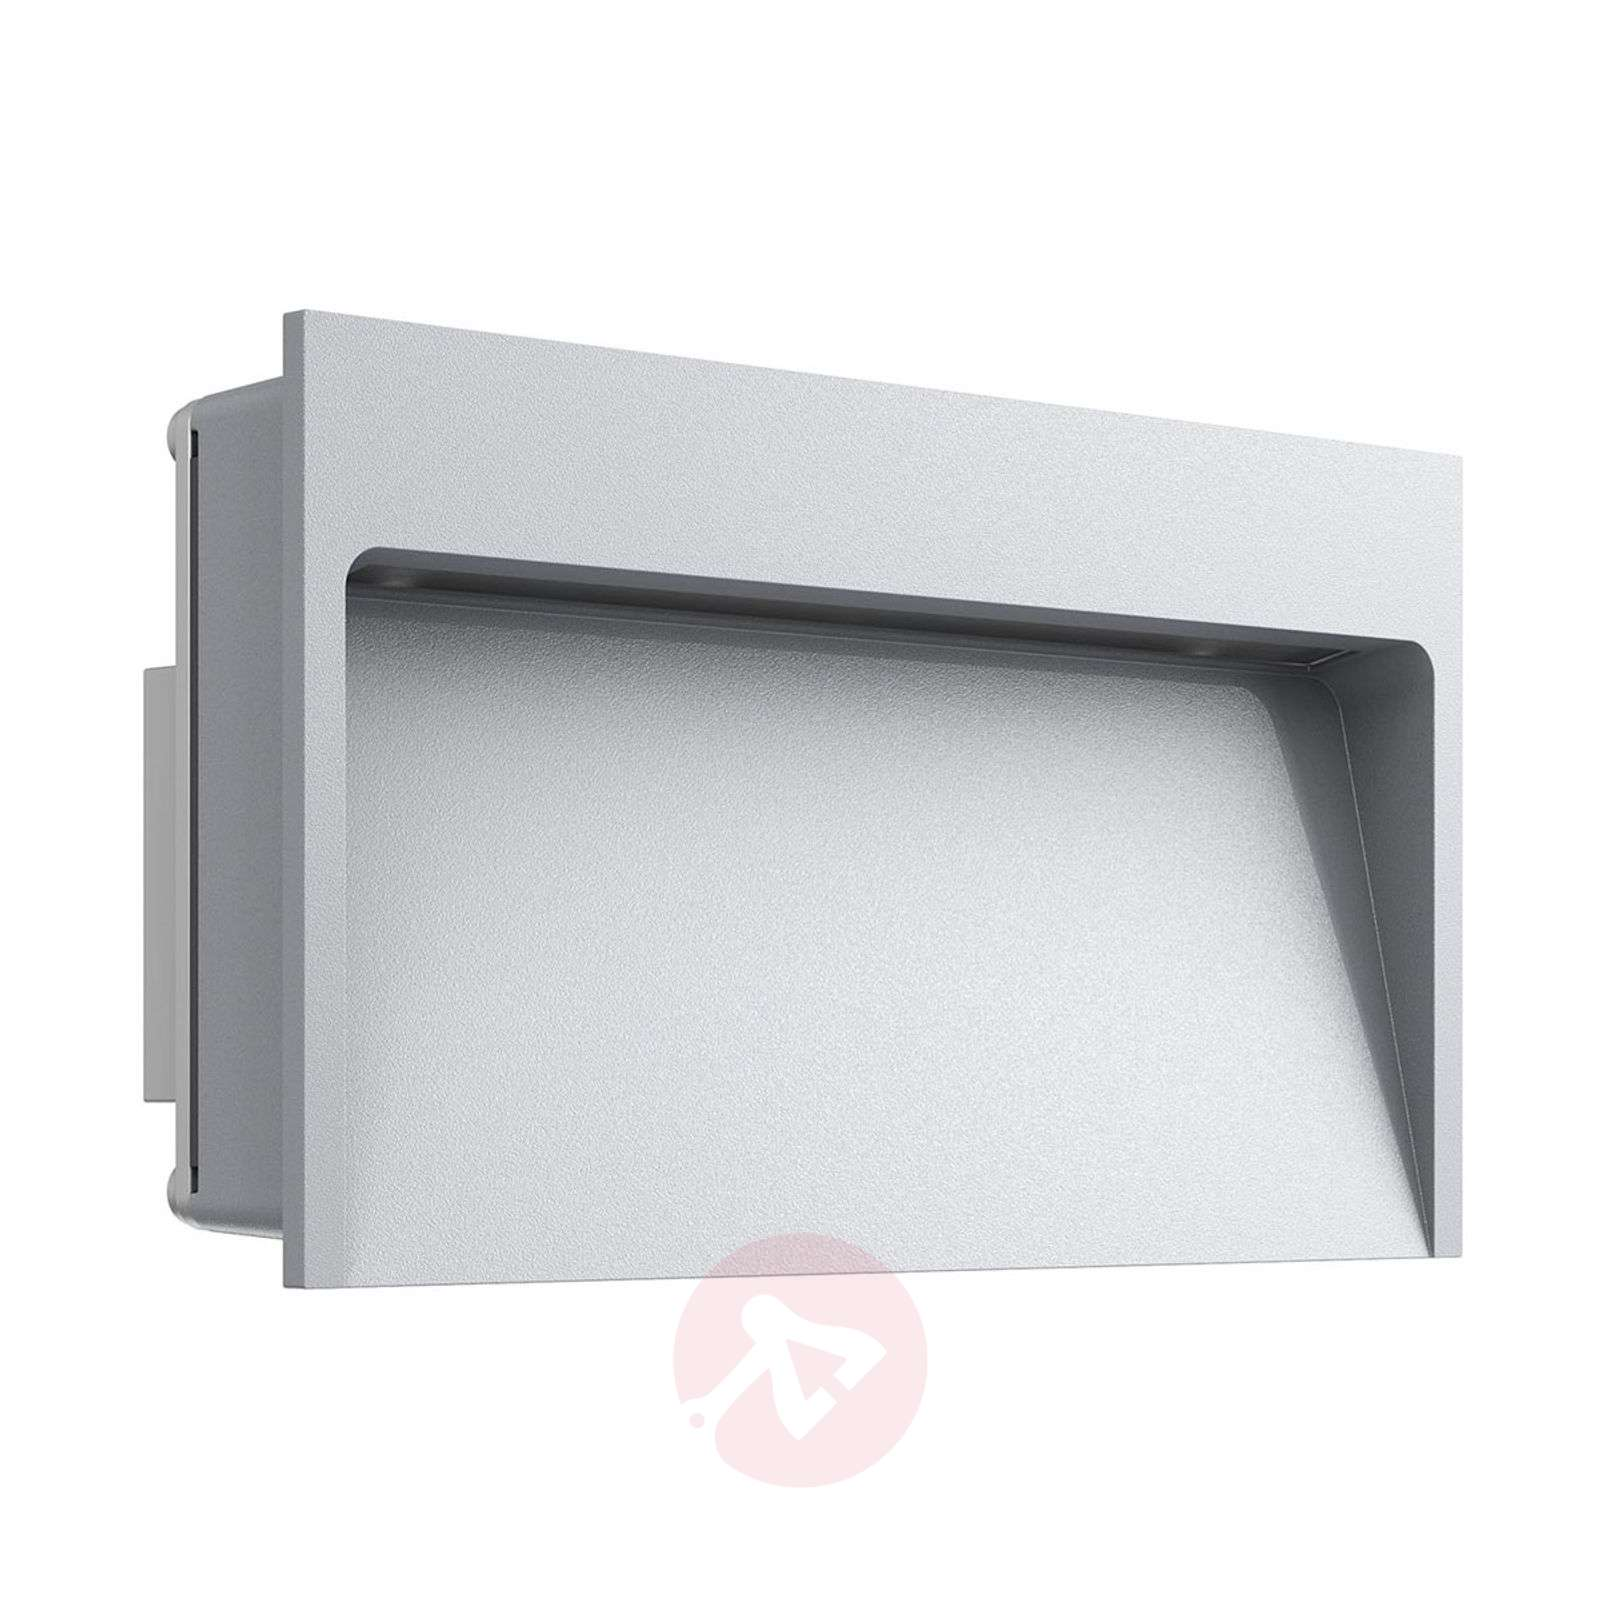 Wide led recessed wall light my way lights small led wall recessed lamp my way grey 3510418 01 aloadofball Images